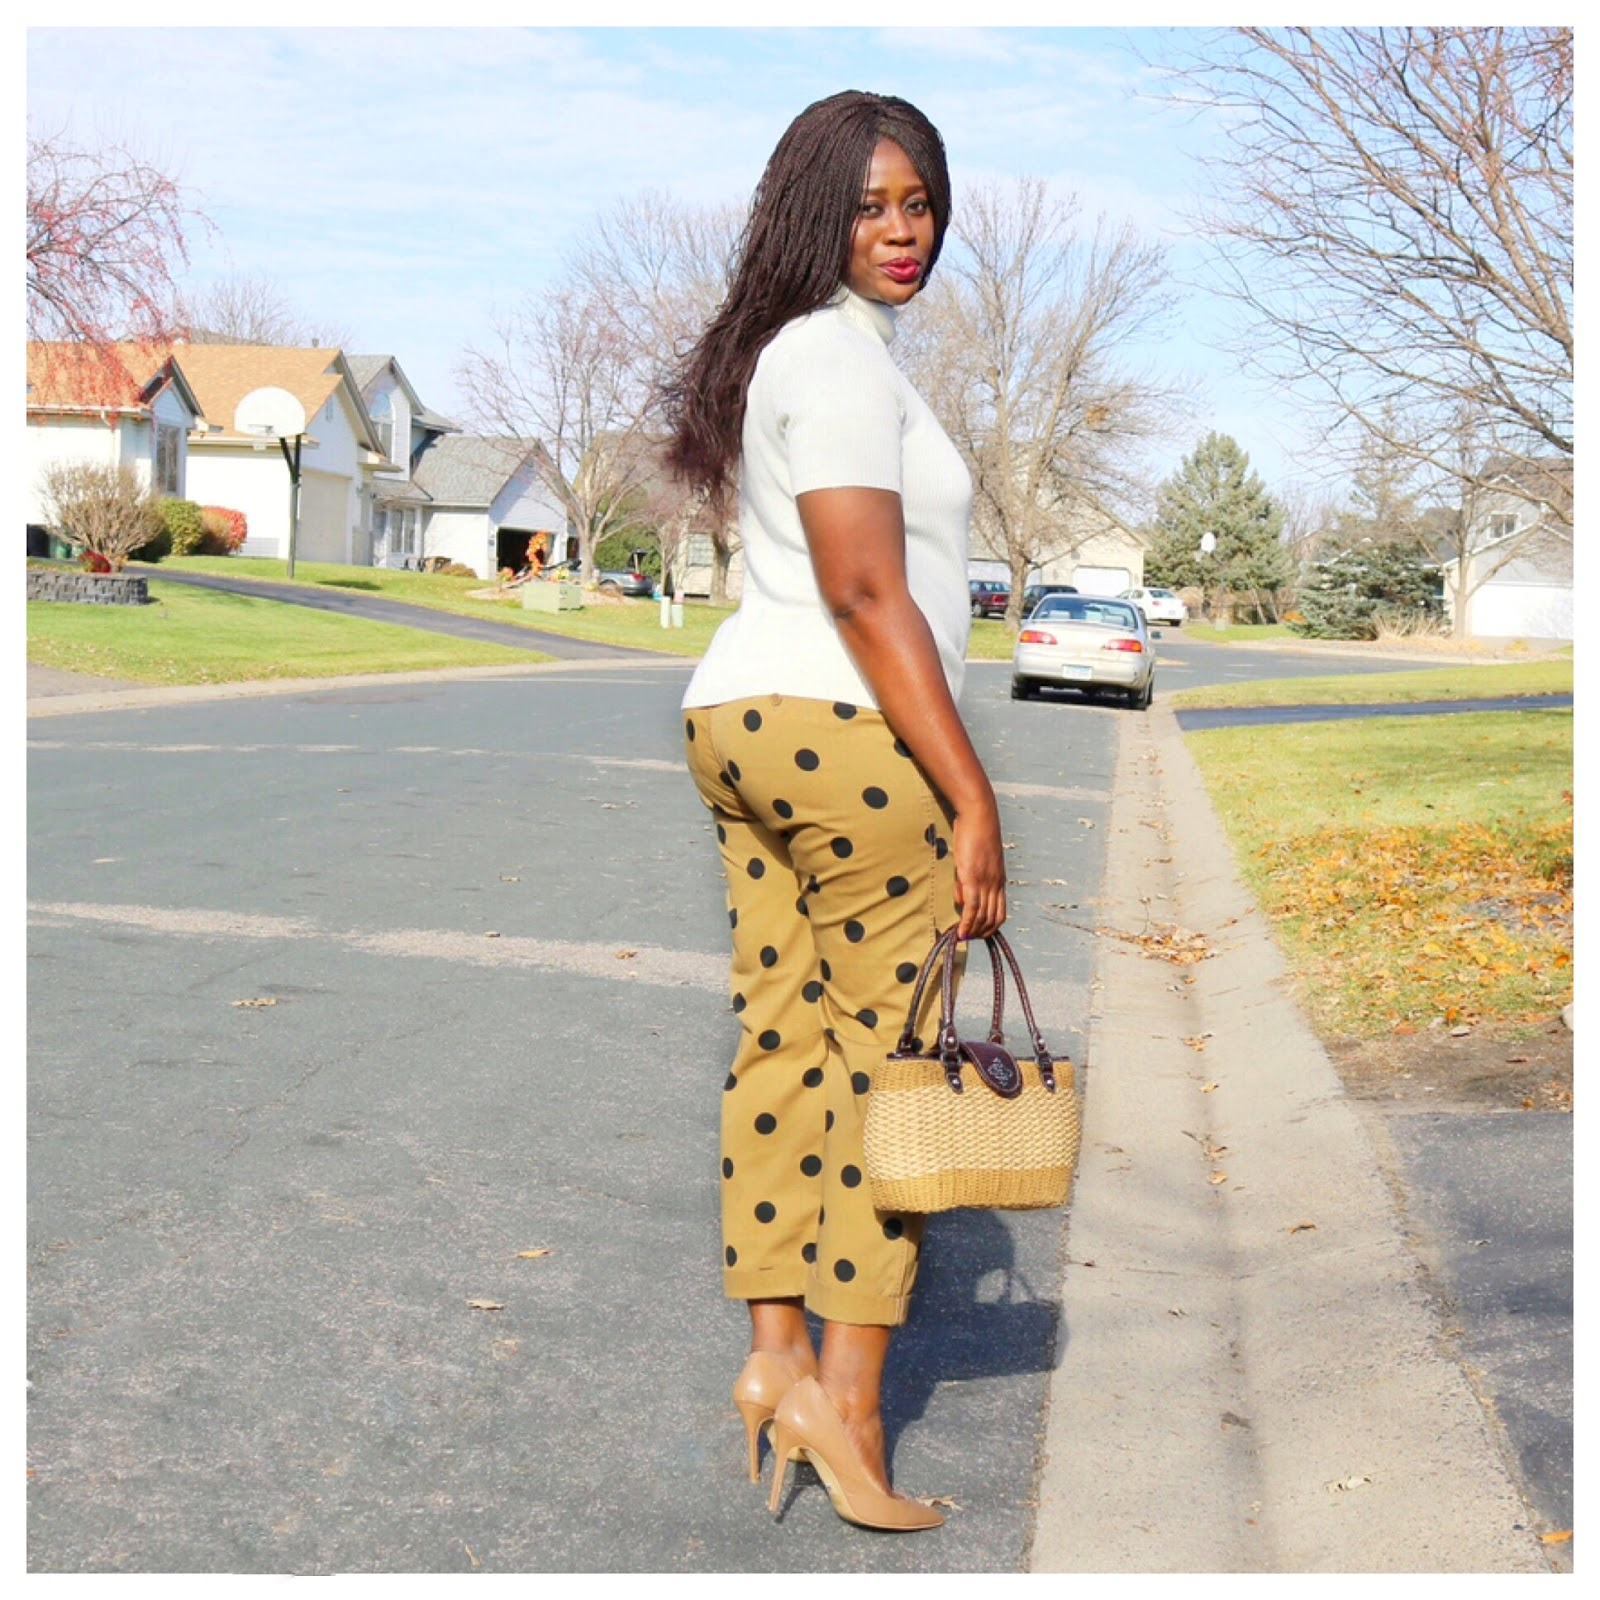 Beauty's Fashion Zone: Cream Color Sweater + Brown Polka